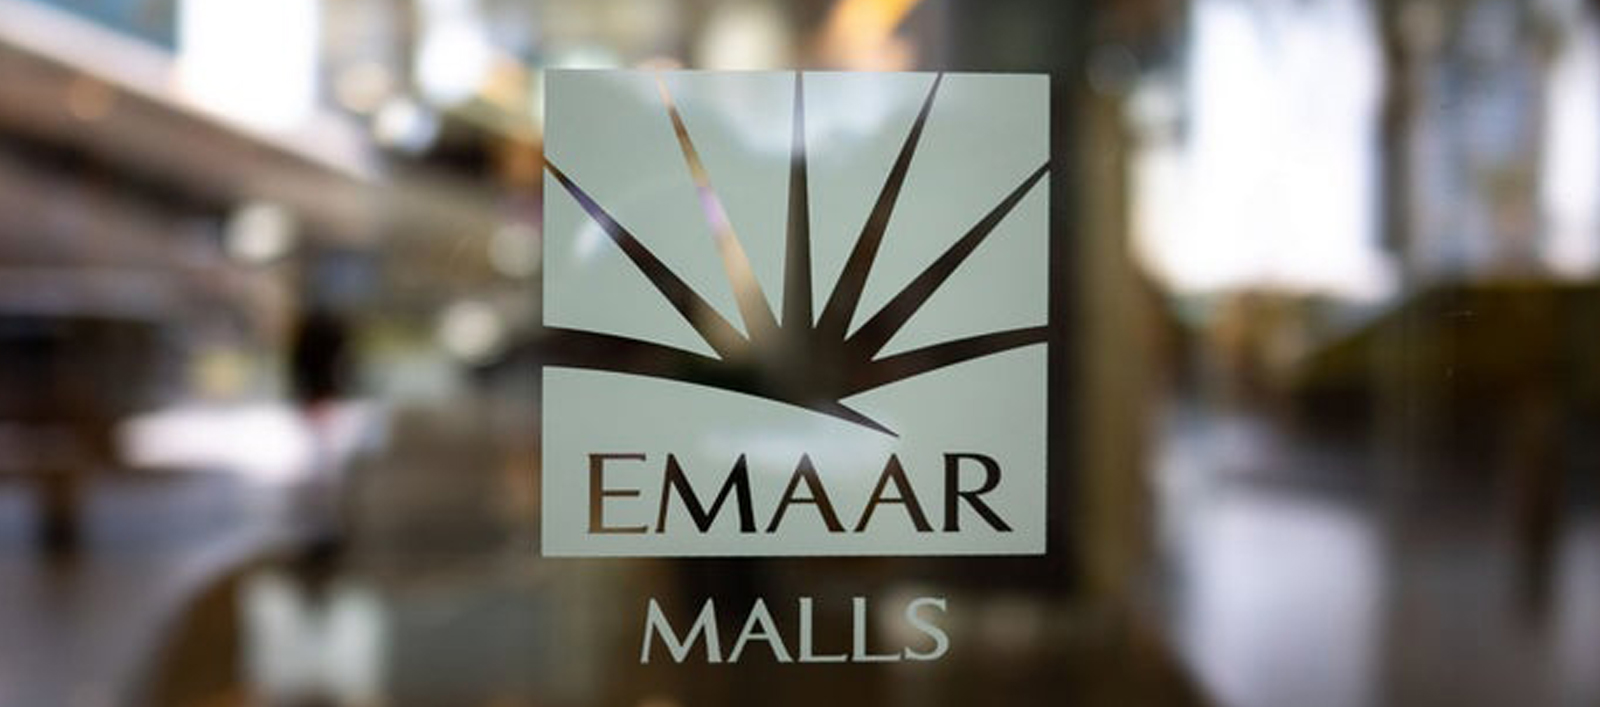 Emaar Mall.jpeg